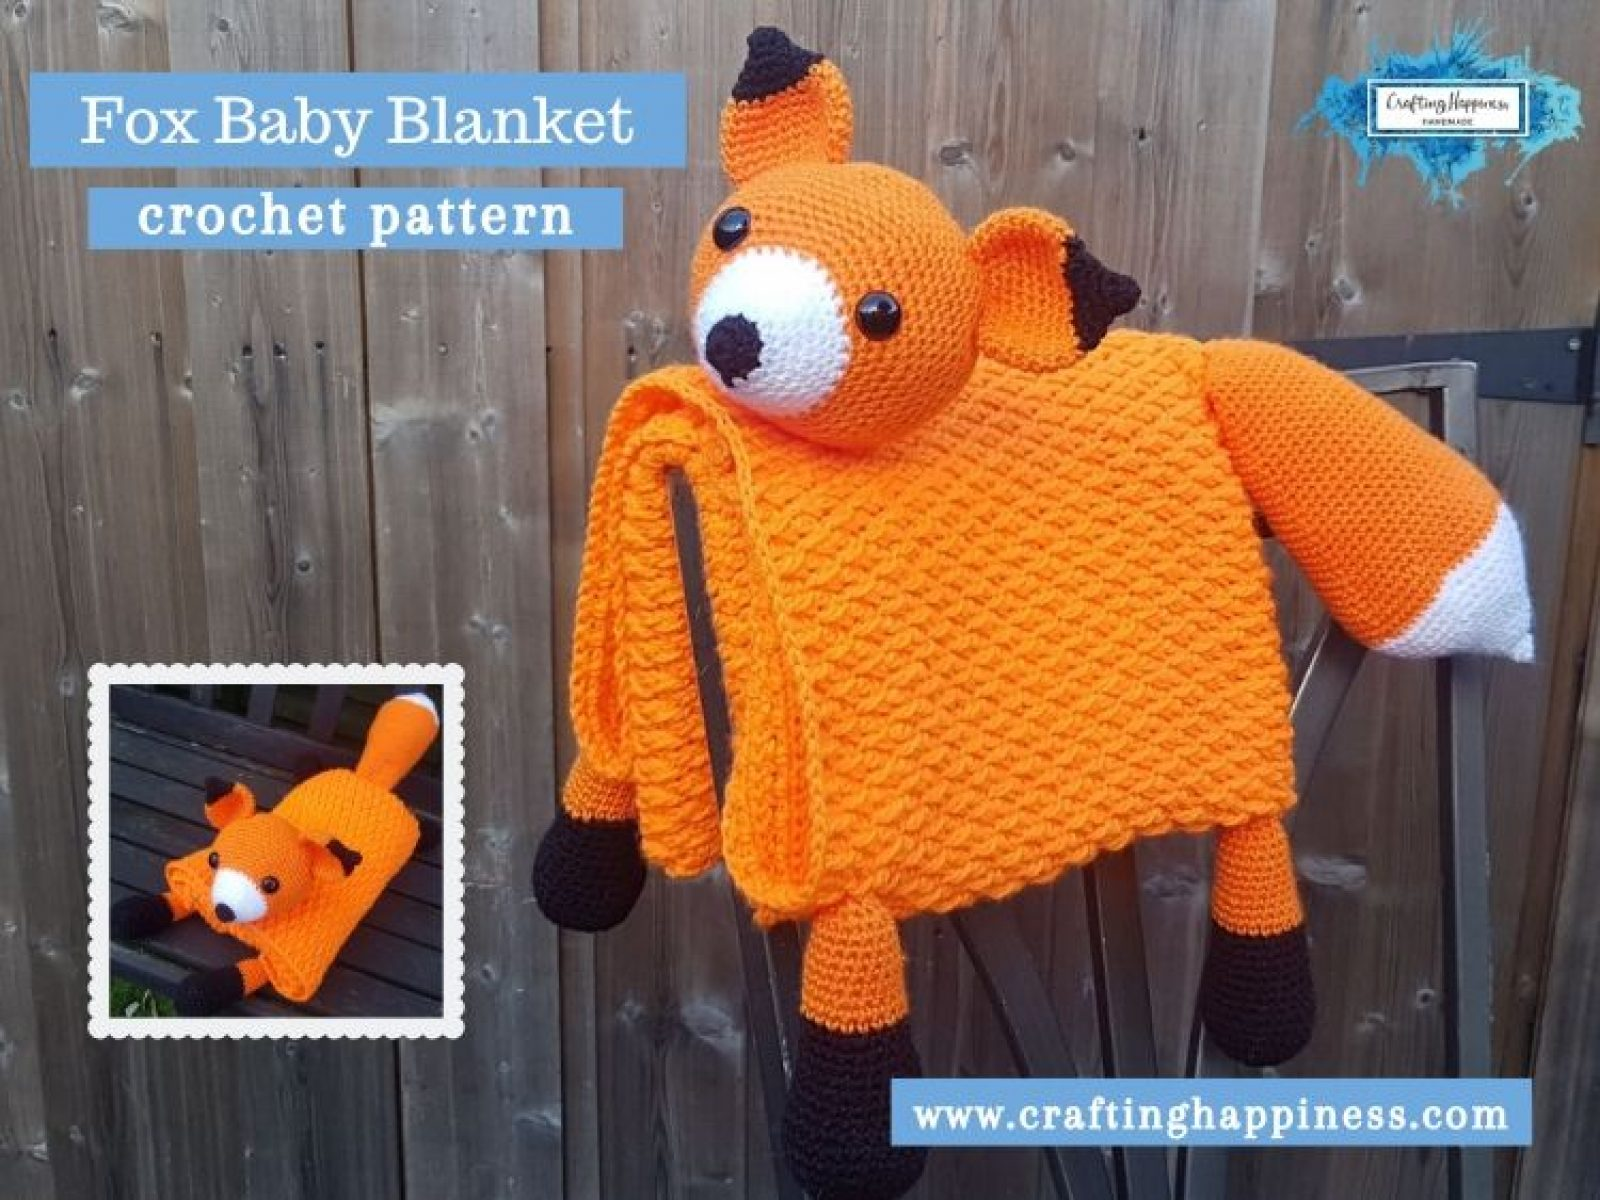 Fox Baby Blanket by Crafting Happiness FACEBOOK POSTER